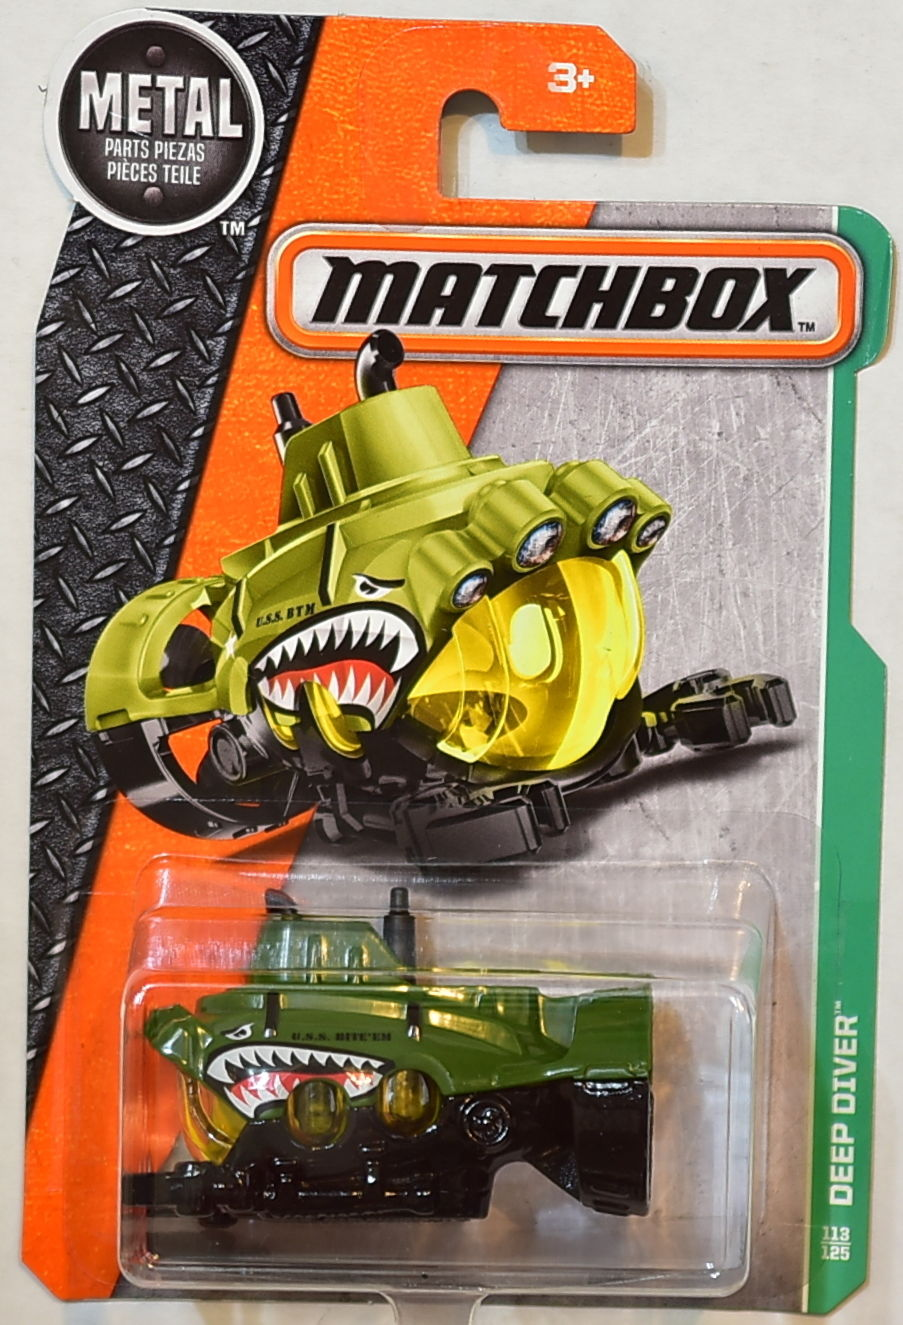 MATCHBOX 2016 METAL PARTS PIEZAS DEEP DIVER